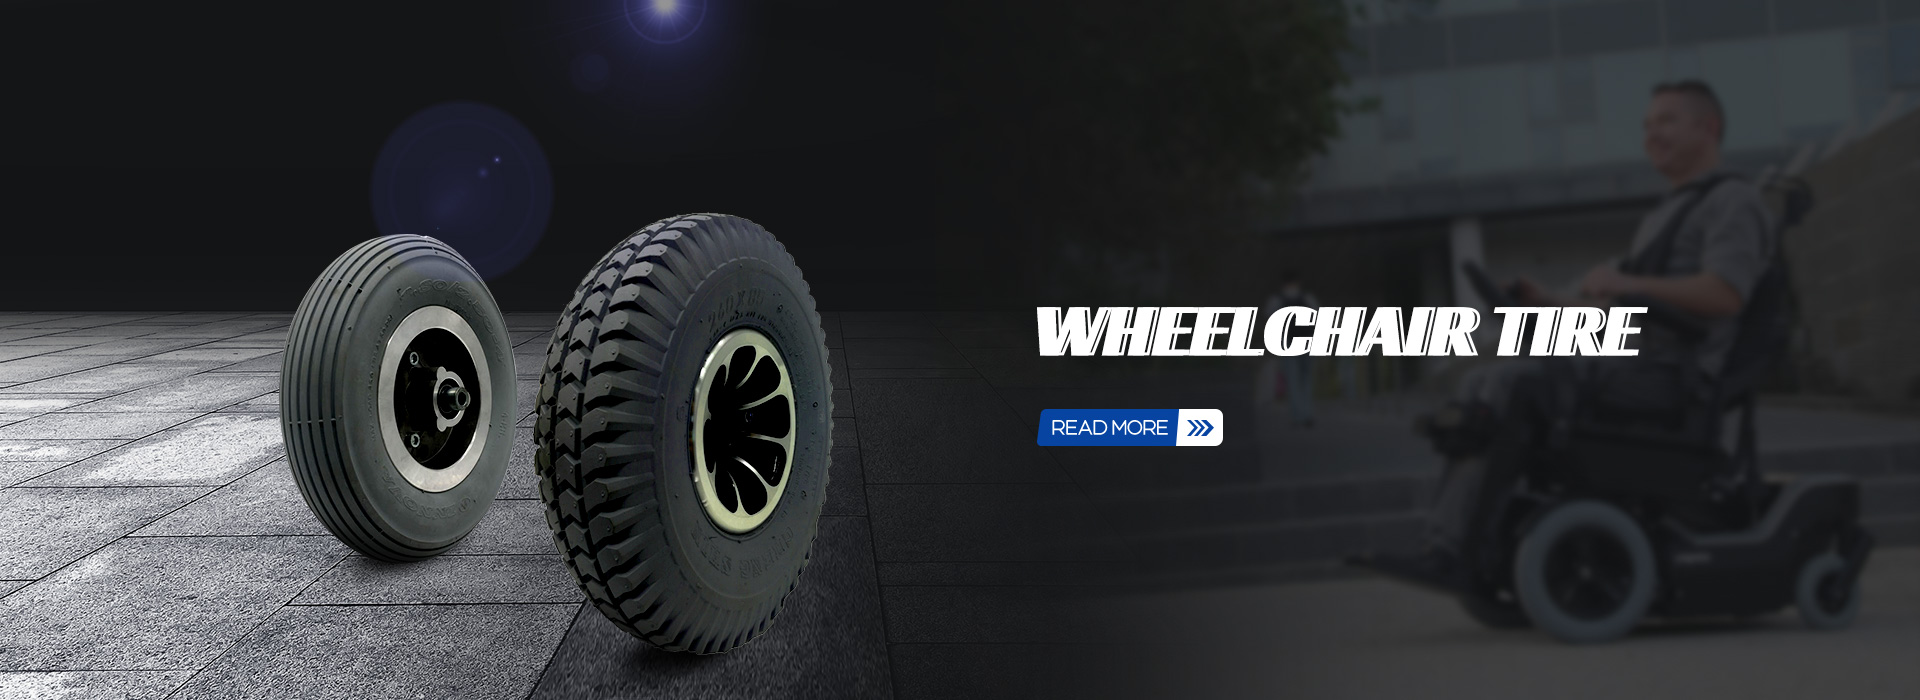 WHEELCHAIR TIRE